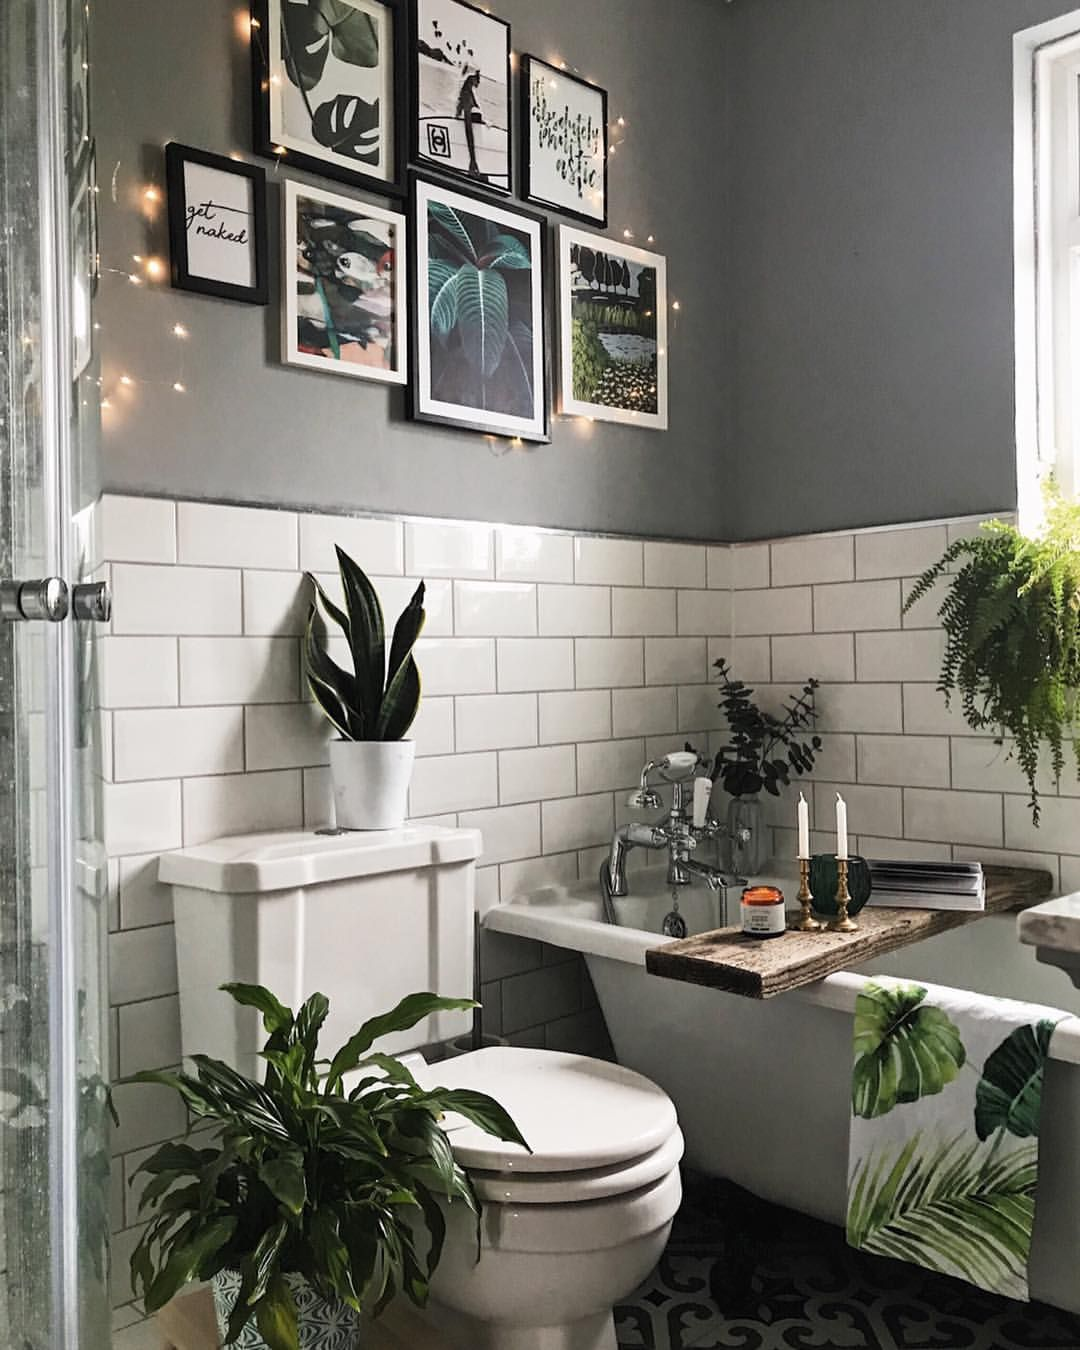 Gallery Wall Art In The Bathroom Grey And Metro White Tile Decor With Plants Melaniejadedesign White Bathroom Designs Bathroom Tile Designs Bathroom Interior